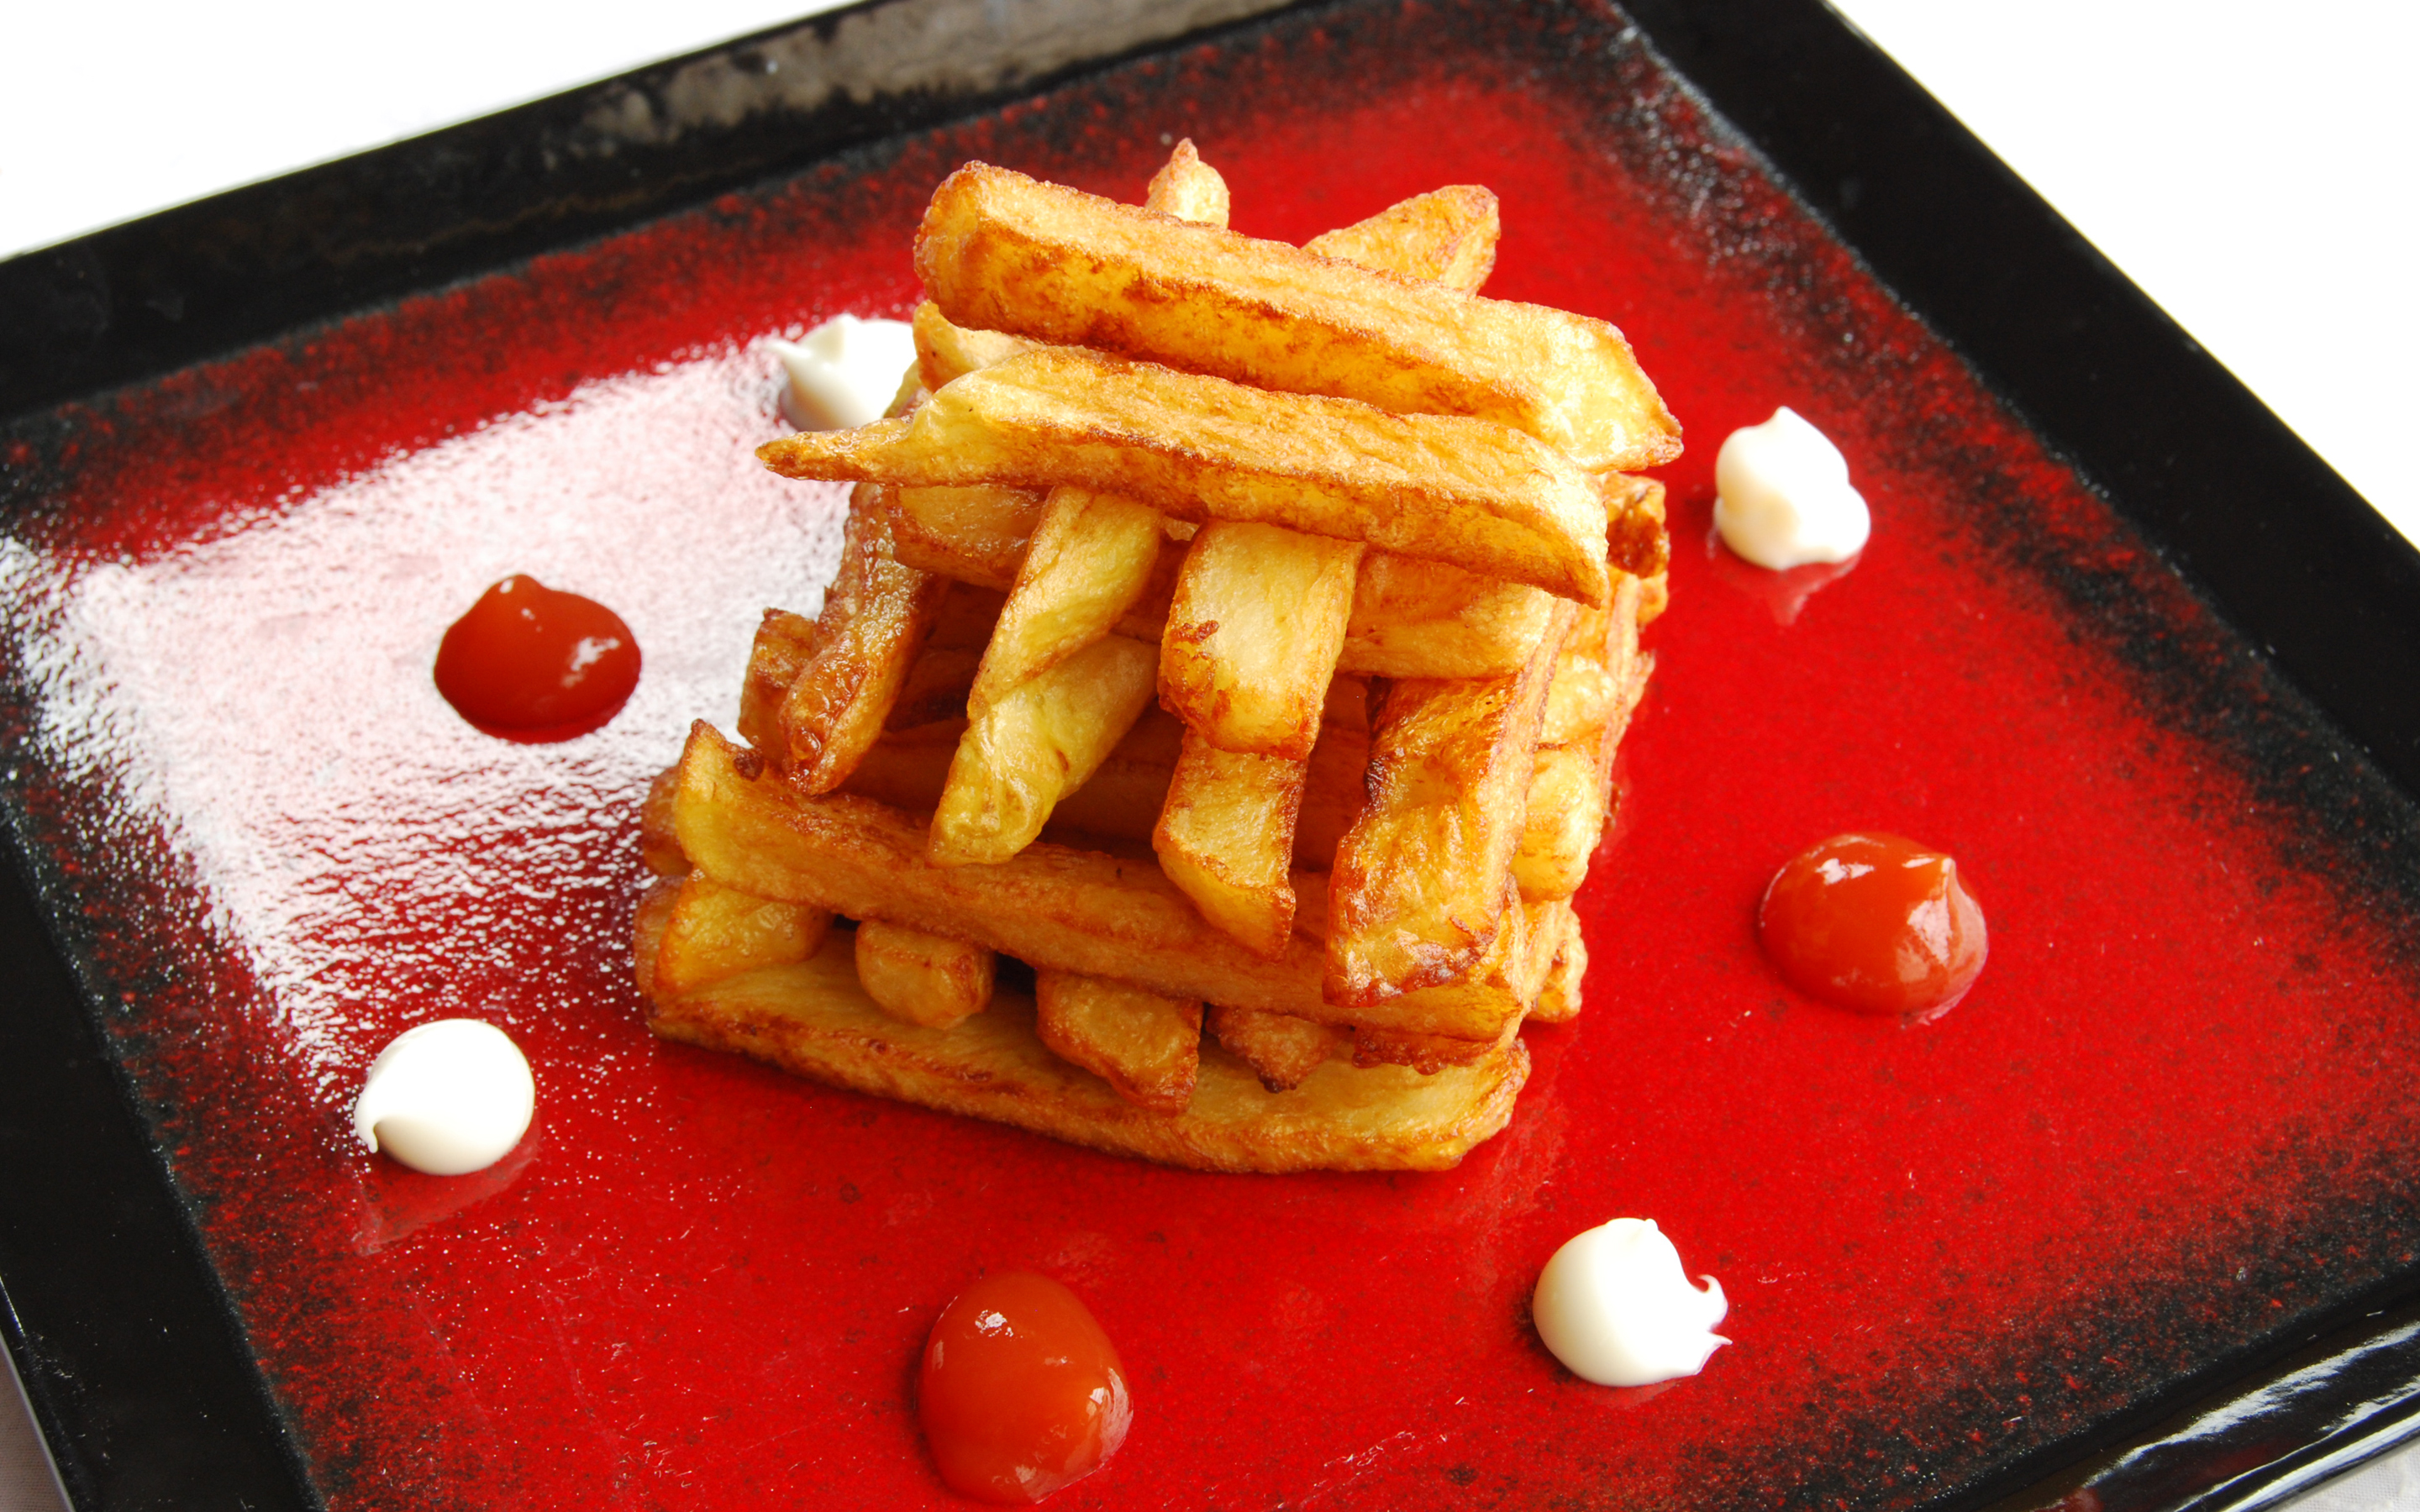 kitchen fryer design center how to make belgian fries: 8 steps (with pictures) - wikihow